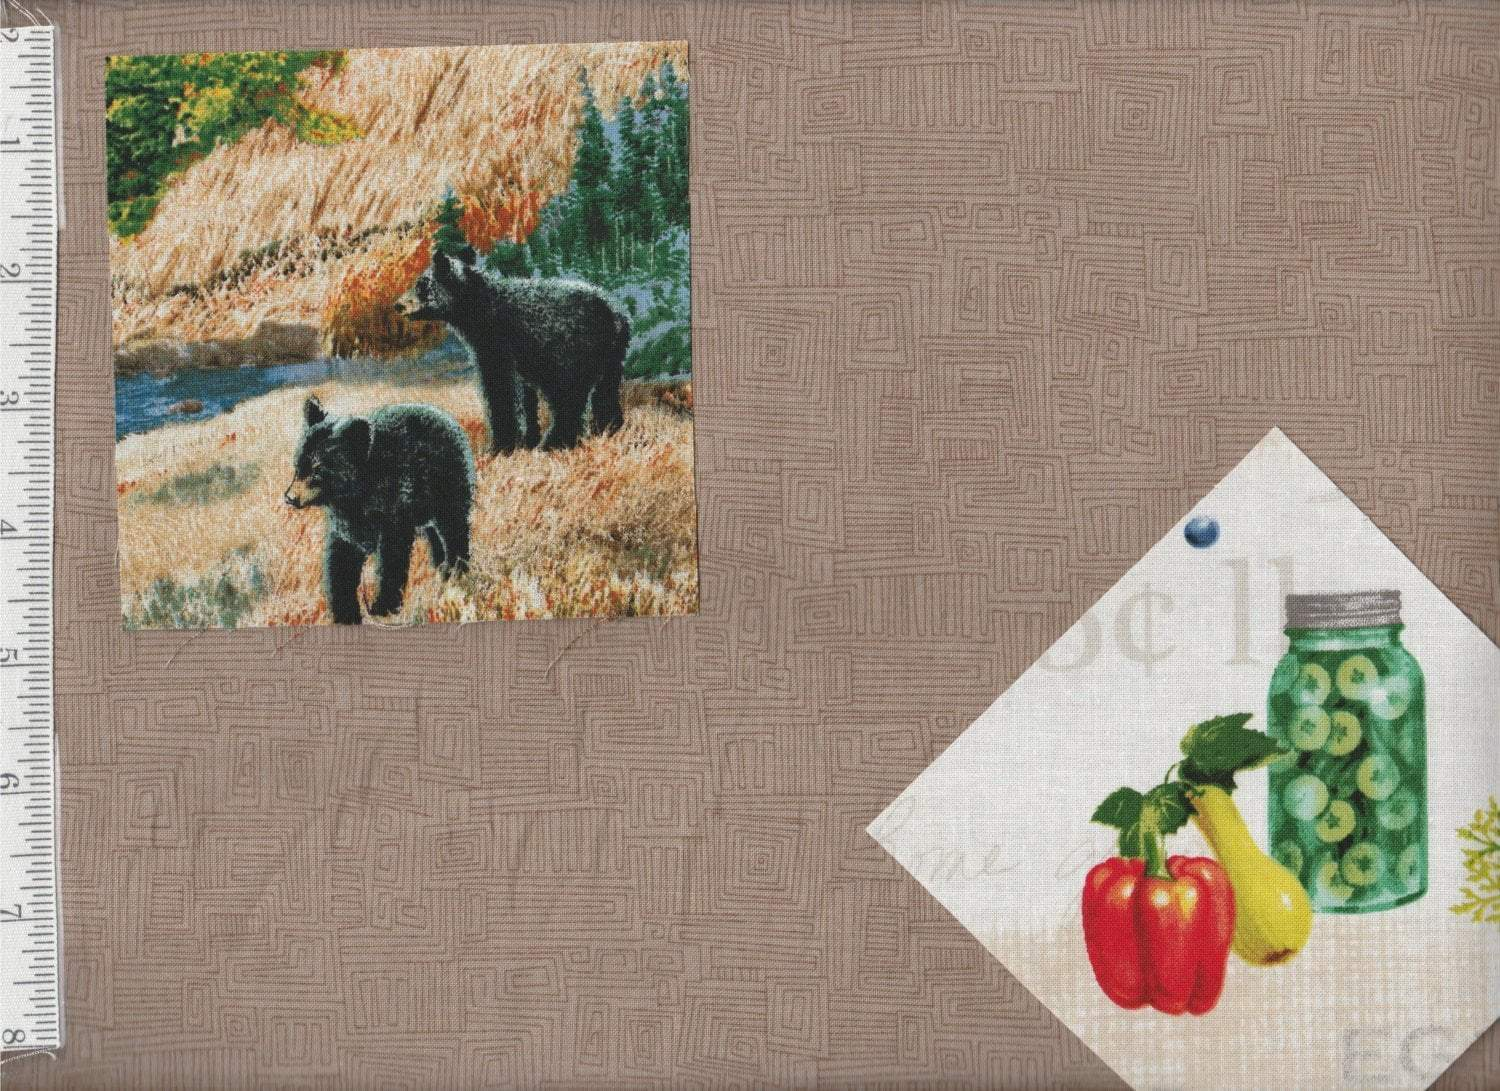 Bear Essentials - per yard - P&B Textiles - Tan - Color # 667 - RebsFabStash